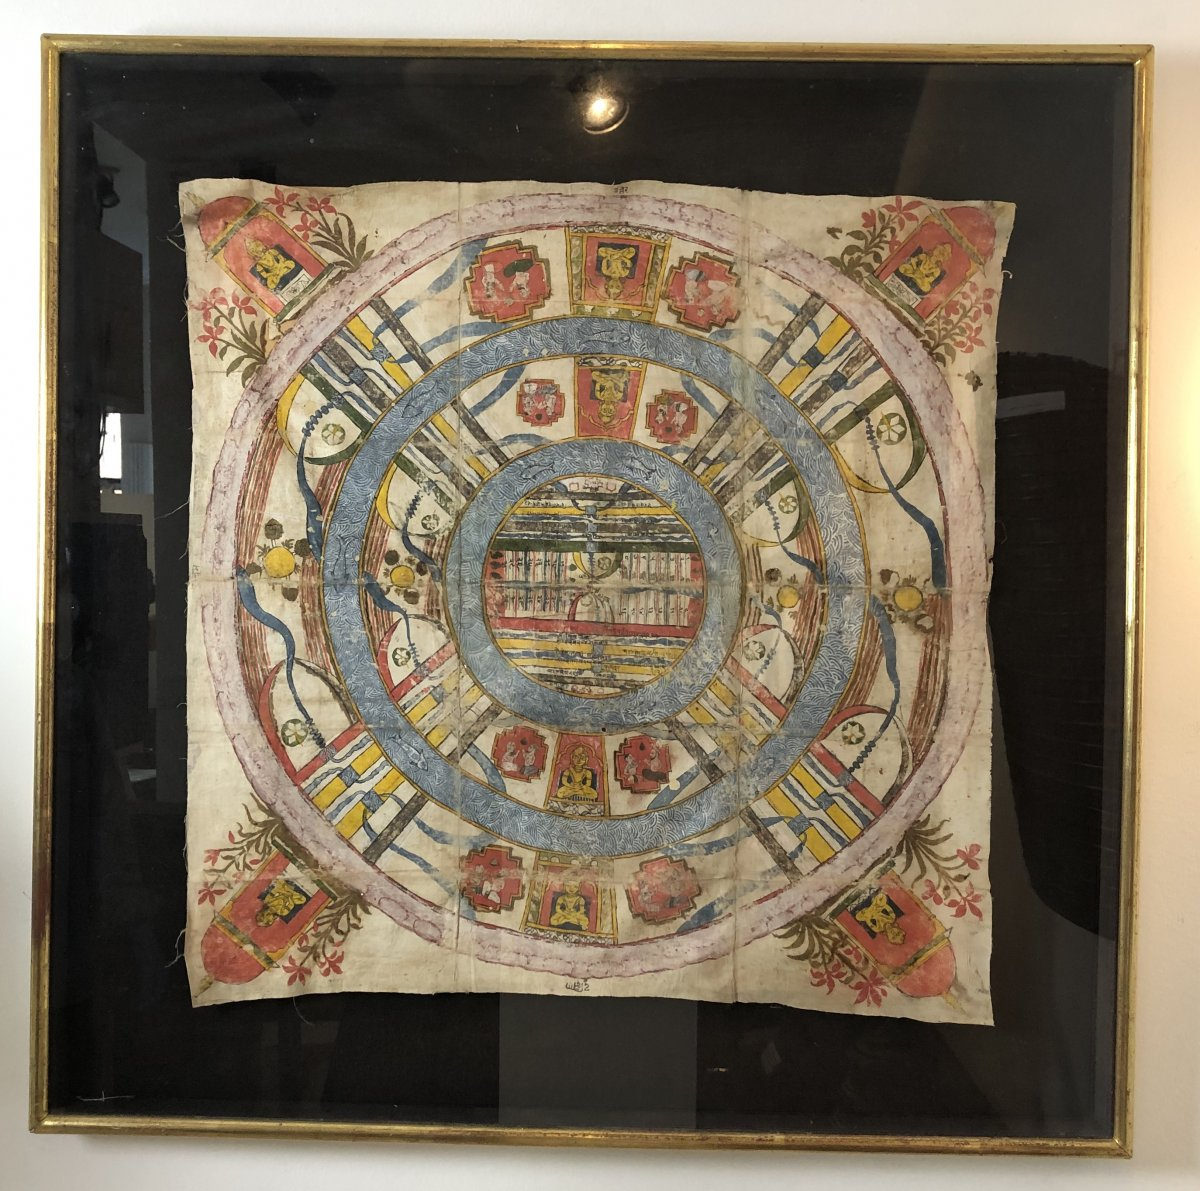 <br /> This Jain cosmological mandala represents the plan of jambudvipa cf an example similar to the victoria albert museum no. Circ. 91-1970 Among the most abstract representations of the jain, there are maps of the middle world - hence the liberation from the cycle of rebirth is possible. They show two and a half continents, arranged concentrically and separated by blue rings that represent the oceans. The central continent is called Jambudvipa, the continent of the pink apple tree. South of this continent is India. At the center of the map is Mount Meru, the cosmic axis. In the 4 cardinal bridges of the jinas In Jain philosophy, the cosmos (loka) is a reality, and is called substance (dravya). Jain cosmology considers the universe divided into three worlds (triloka): the bottom (adholoka) the top (urdhaloka) and the middle world (madhialoka). The middle world is made up of innumerable rings of land or islands (dvipas), surrounded by different oceans (samudras). It is the smallest of the worlds, but the most important, where humans and animals live, the tirthankaras are born and liberation can be accomplished. This diagram shows the center of the middle world: Jambudvipa, the island of the pink apple tree (our world) with Mount Meru in its center, divided into seven continents by mountain ranges and surrounded by Lavasanamudra, the salad ocean. Surrounding them, there are two islands (Dhatakkikhandavipa and Puskaradvipa) surrounded by a high mountain range beyond which people or animals can be born and the concept of time no longer exists. The sacred geography of Jambudvipa describes a mythological domain, which has its correspondence with ancient Indian geography,<br /> &nbsp;